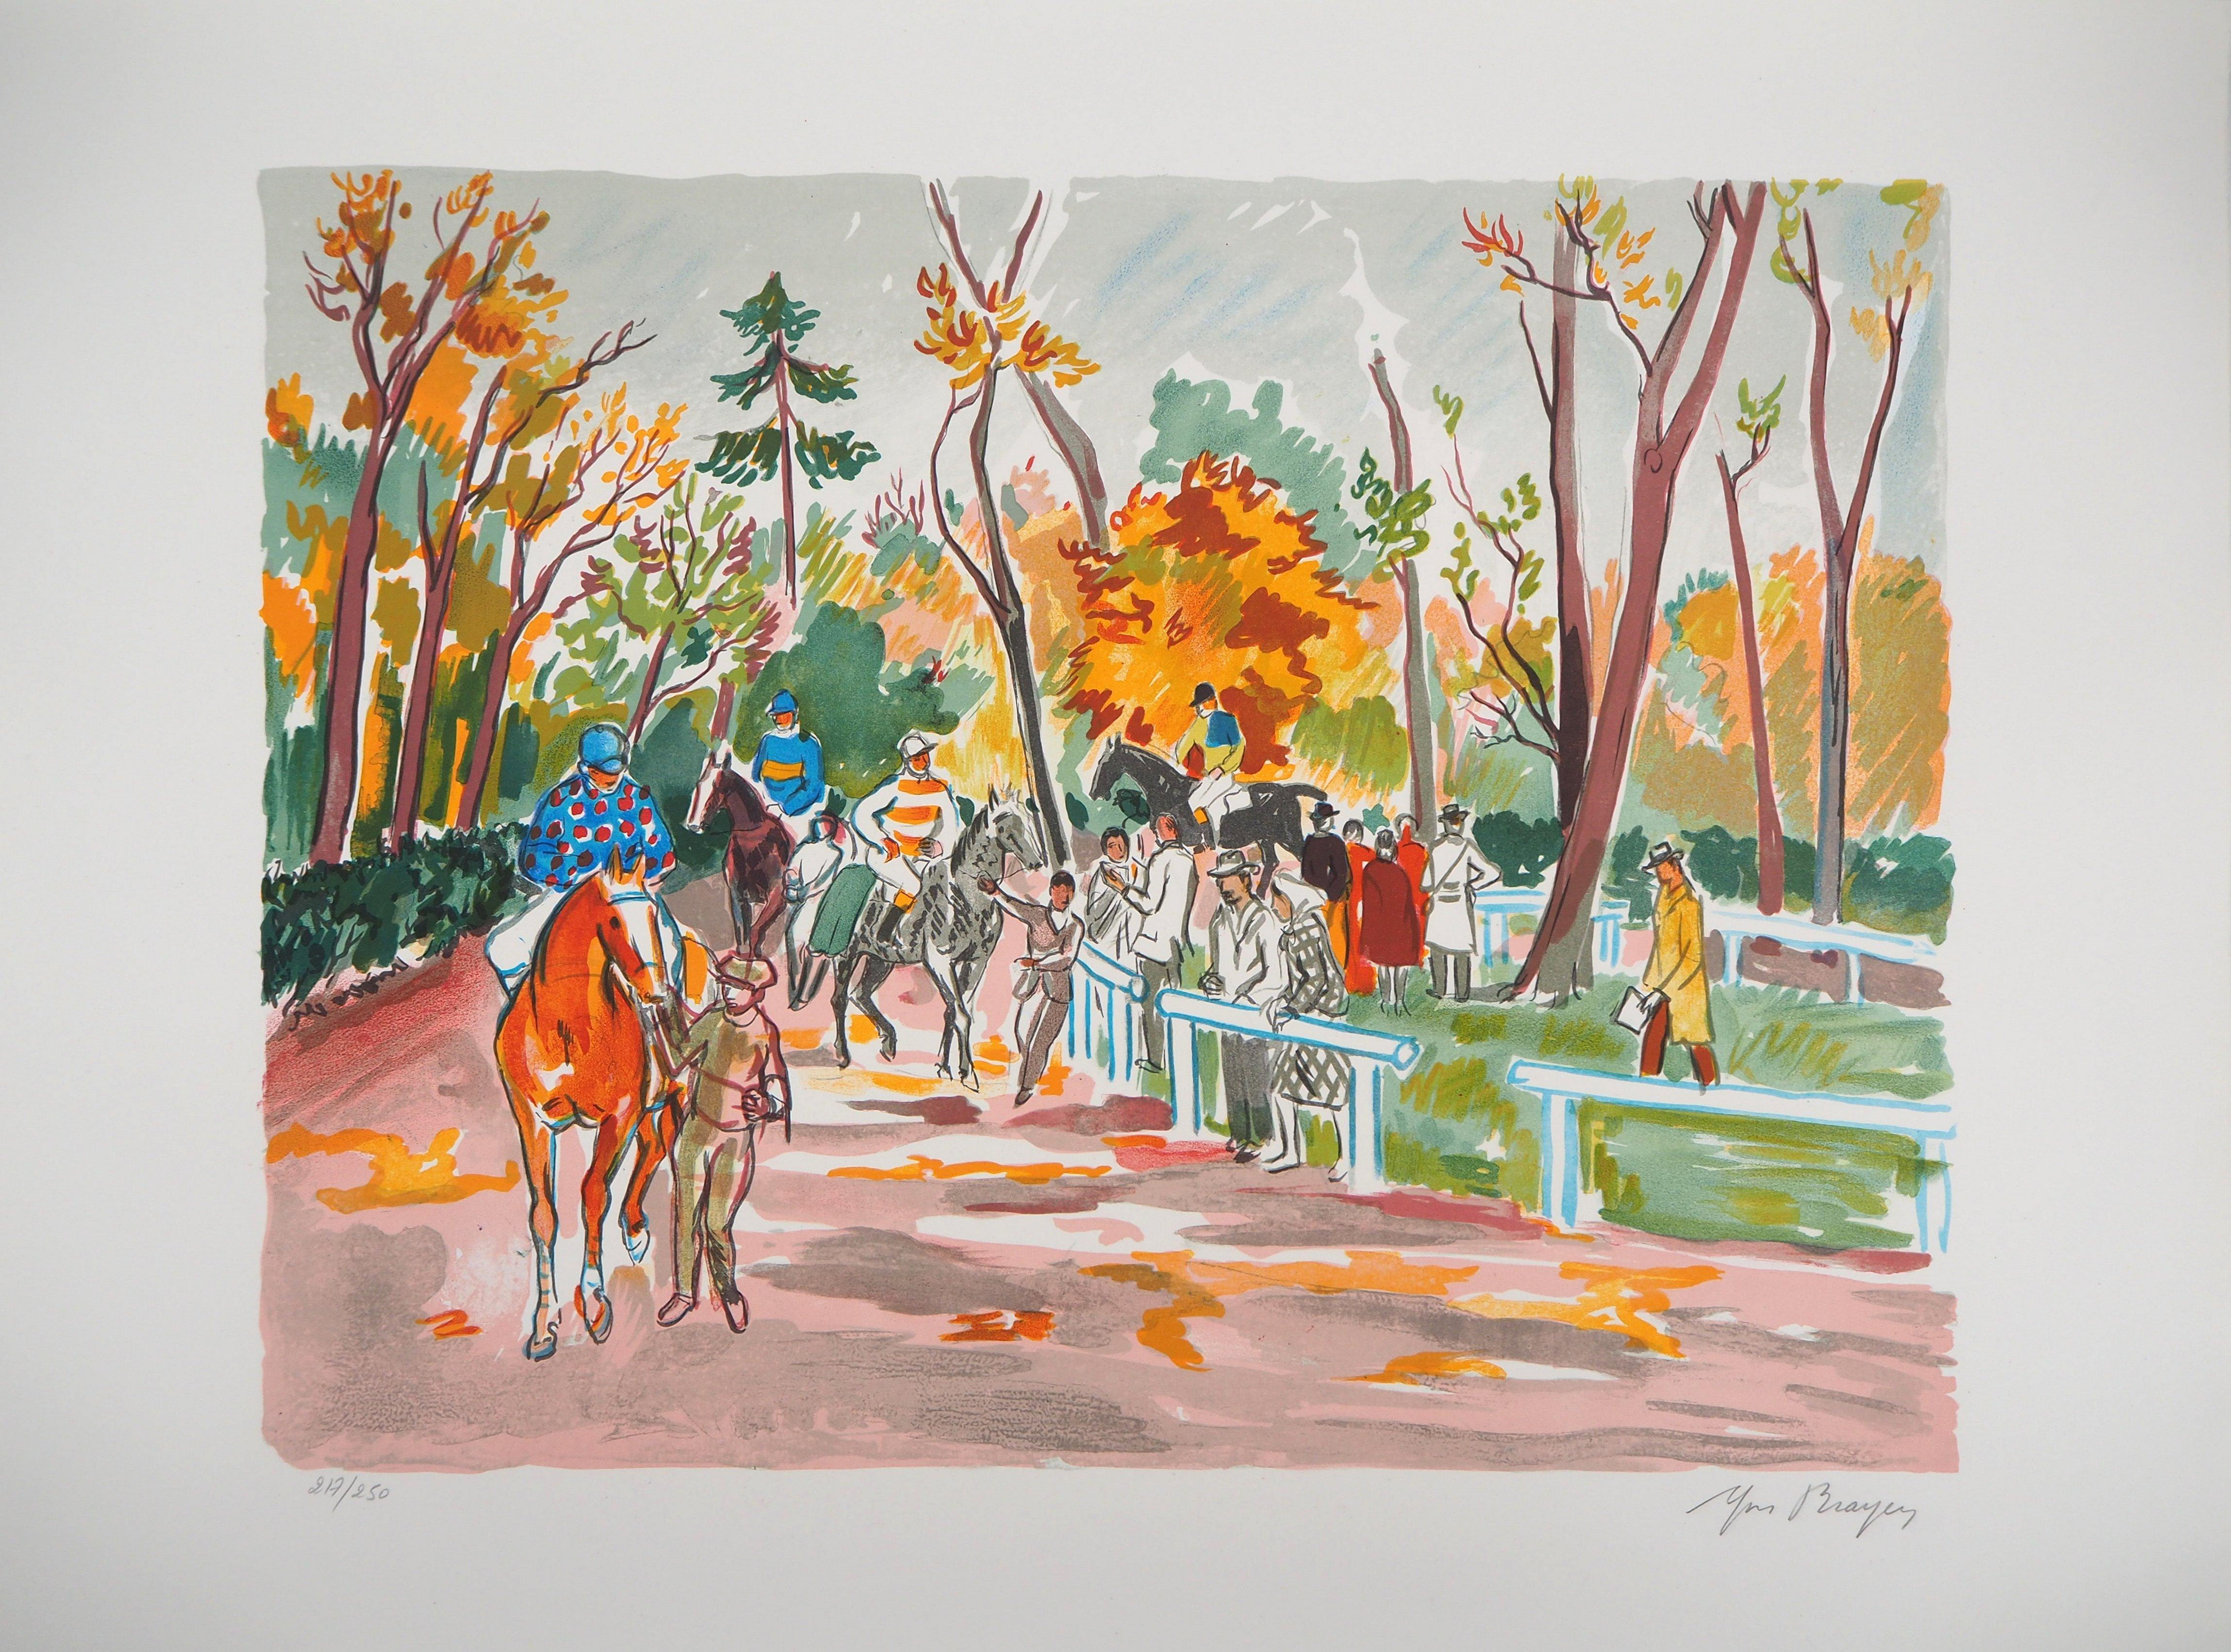 Horseback Riding in the Forest - Original Lithograph Handsigned Numbered